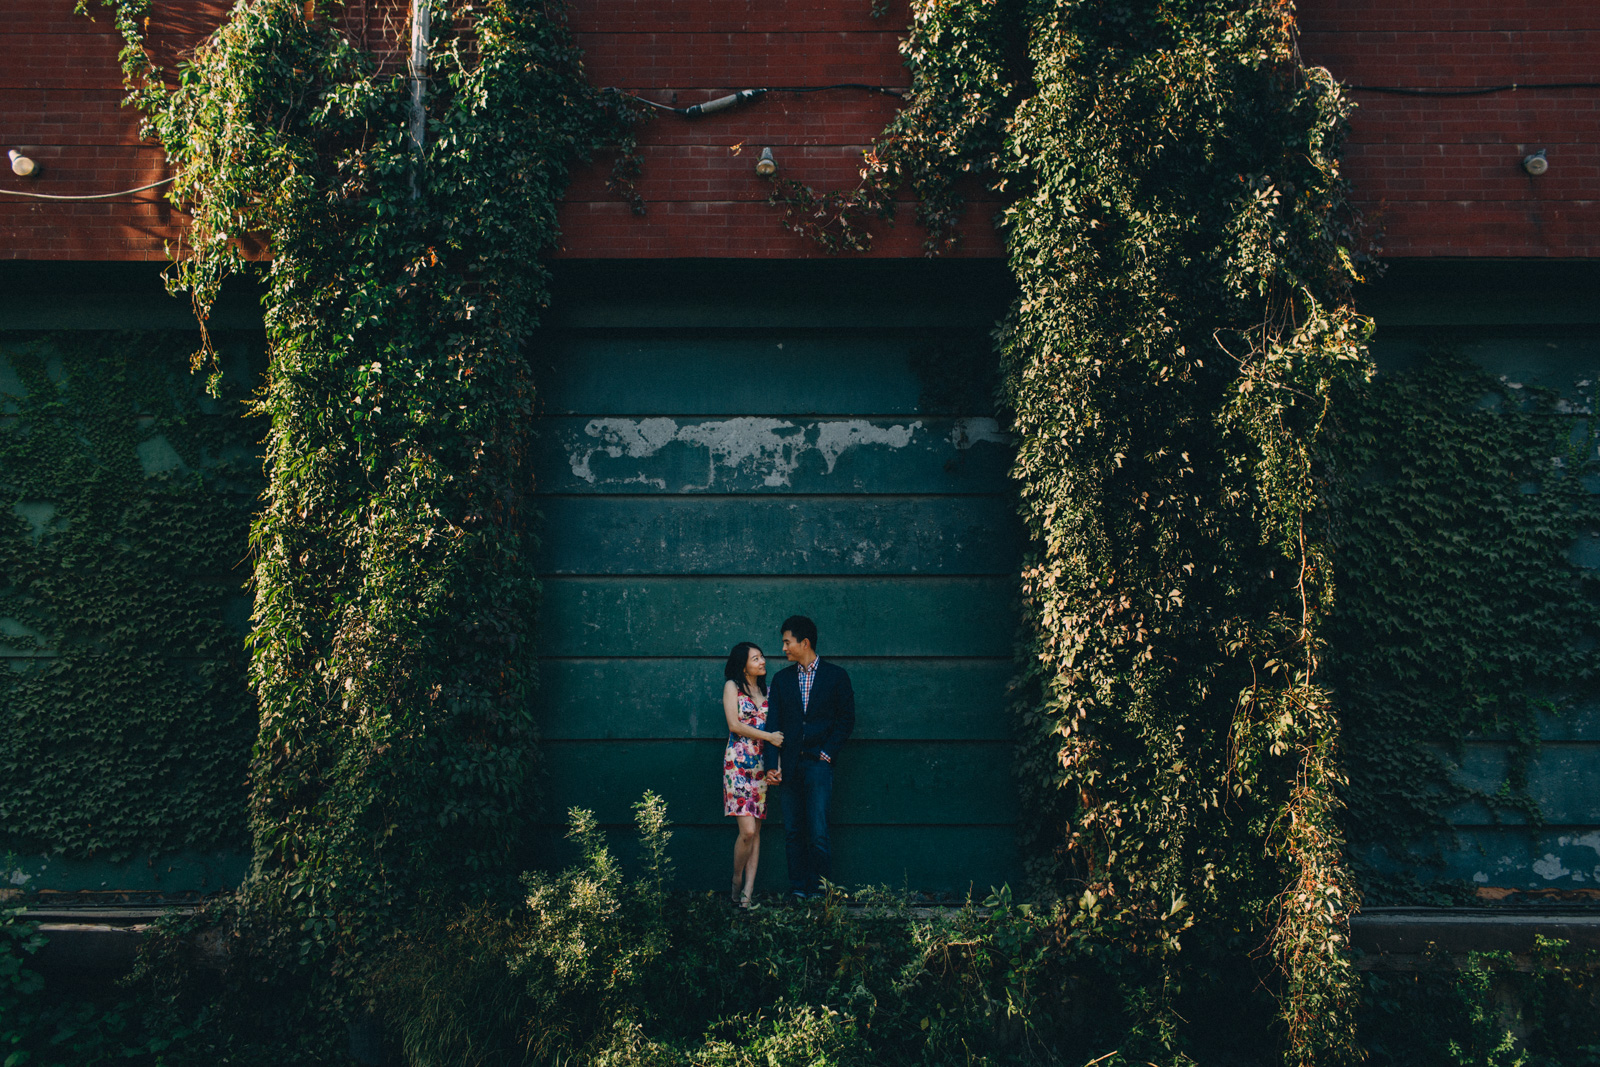 Distillery-District-engagement-photos-Toronto-wedding-photography-by-Sam-Wong-of-Artanis-Collective_015.jpg